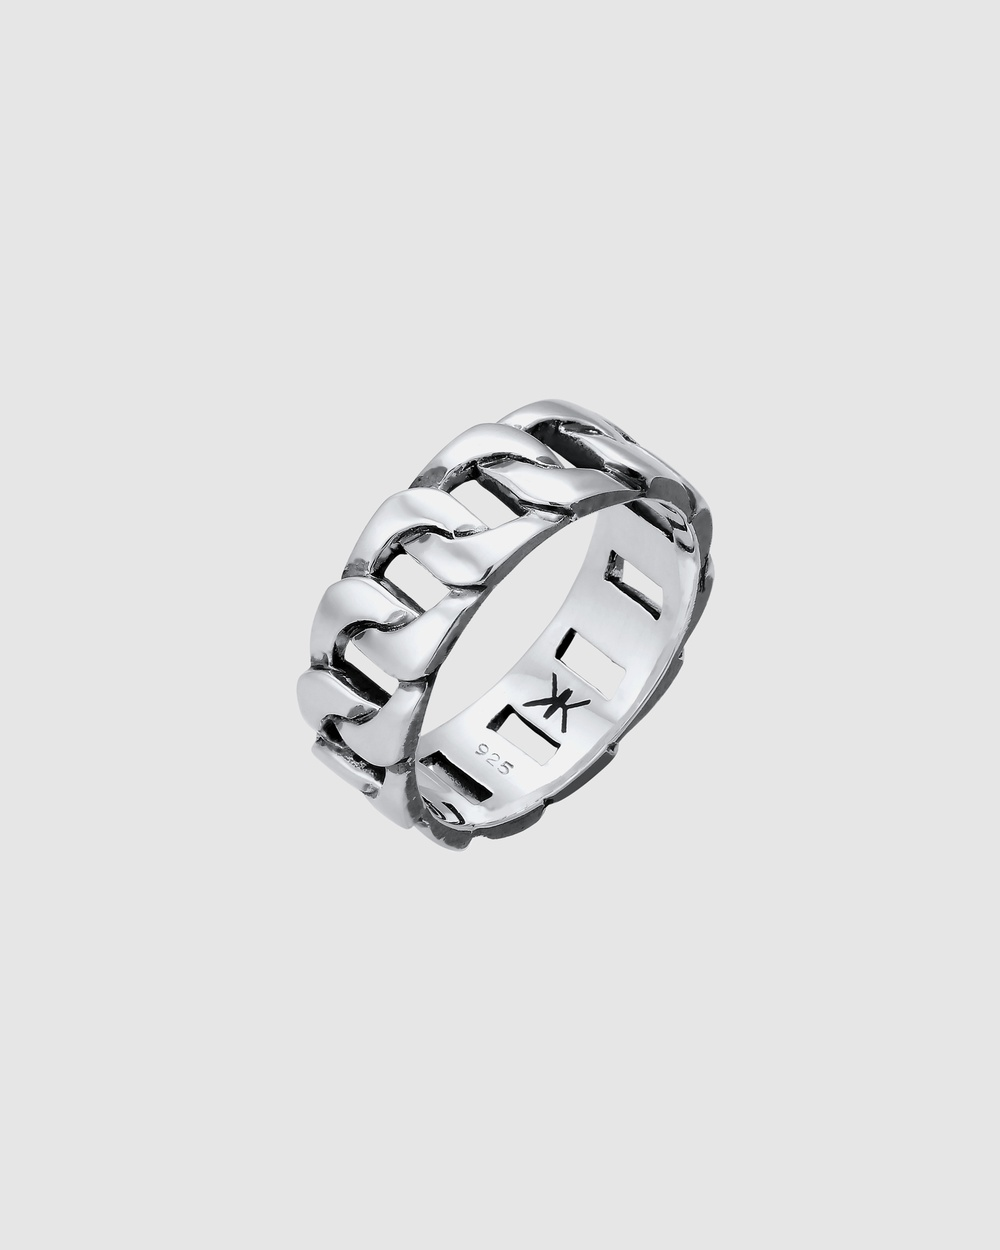 Kuzzoi Ring Statement Chunky Massive Trend in 925 Sterling Silver Jewellery Silver